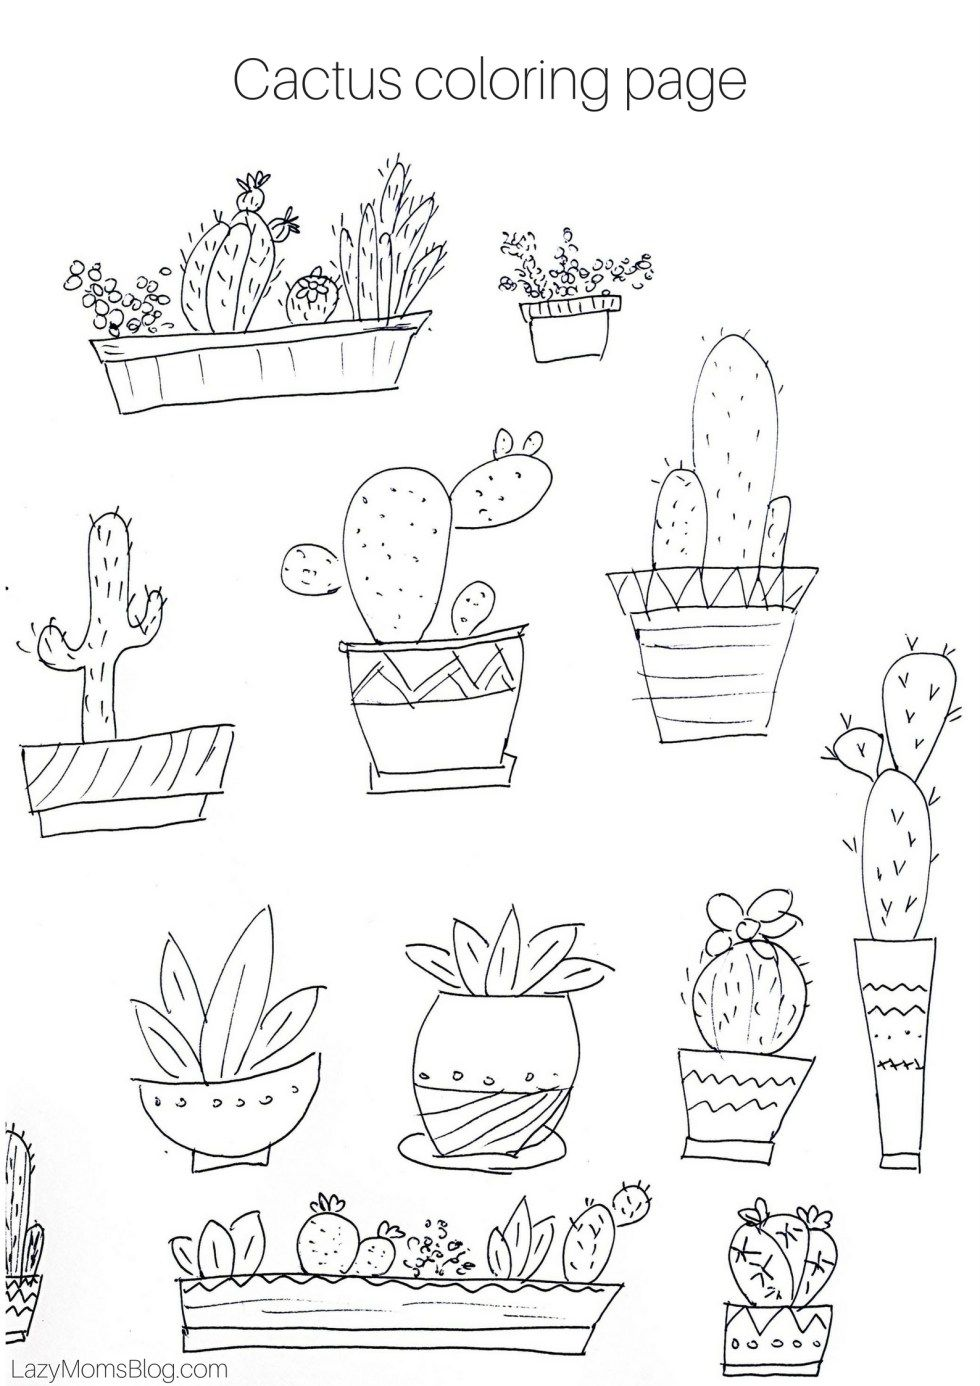 Free Printable Cactus Coloring Page Free Printable Coloring